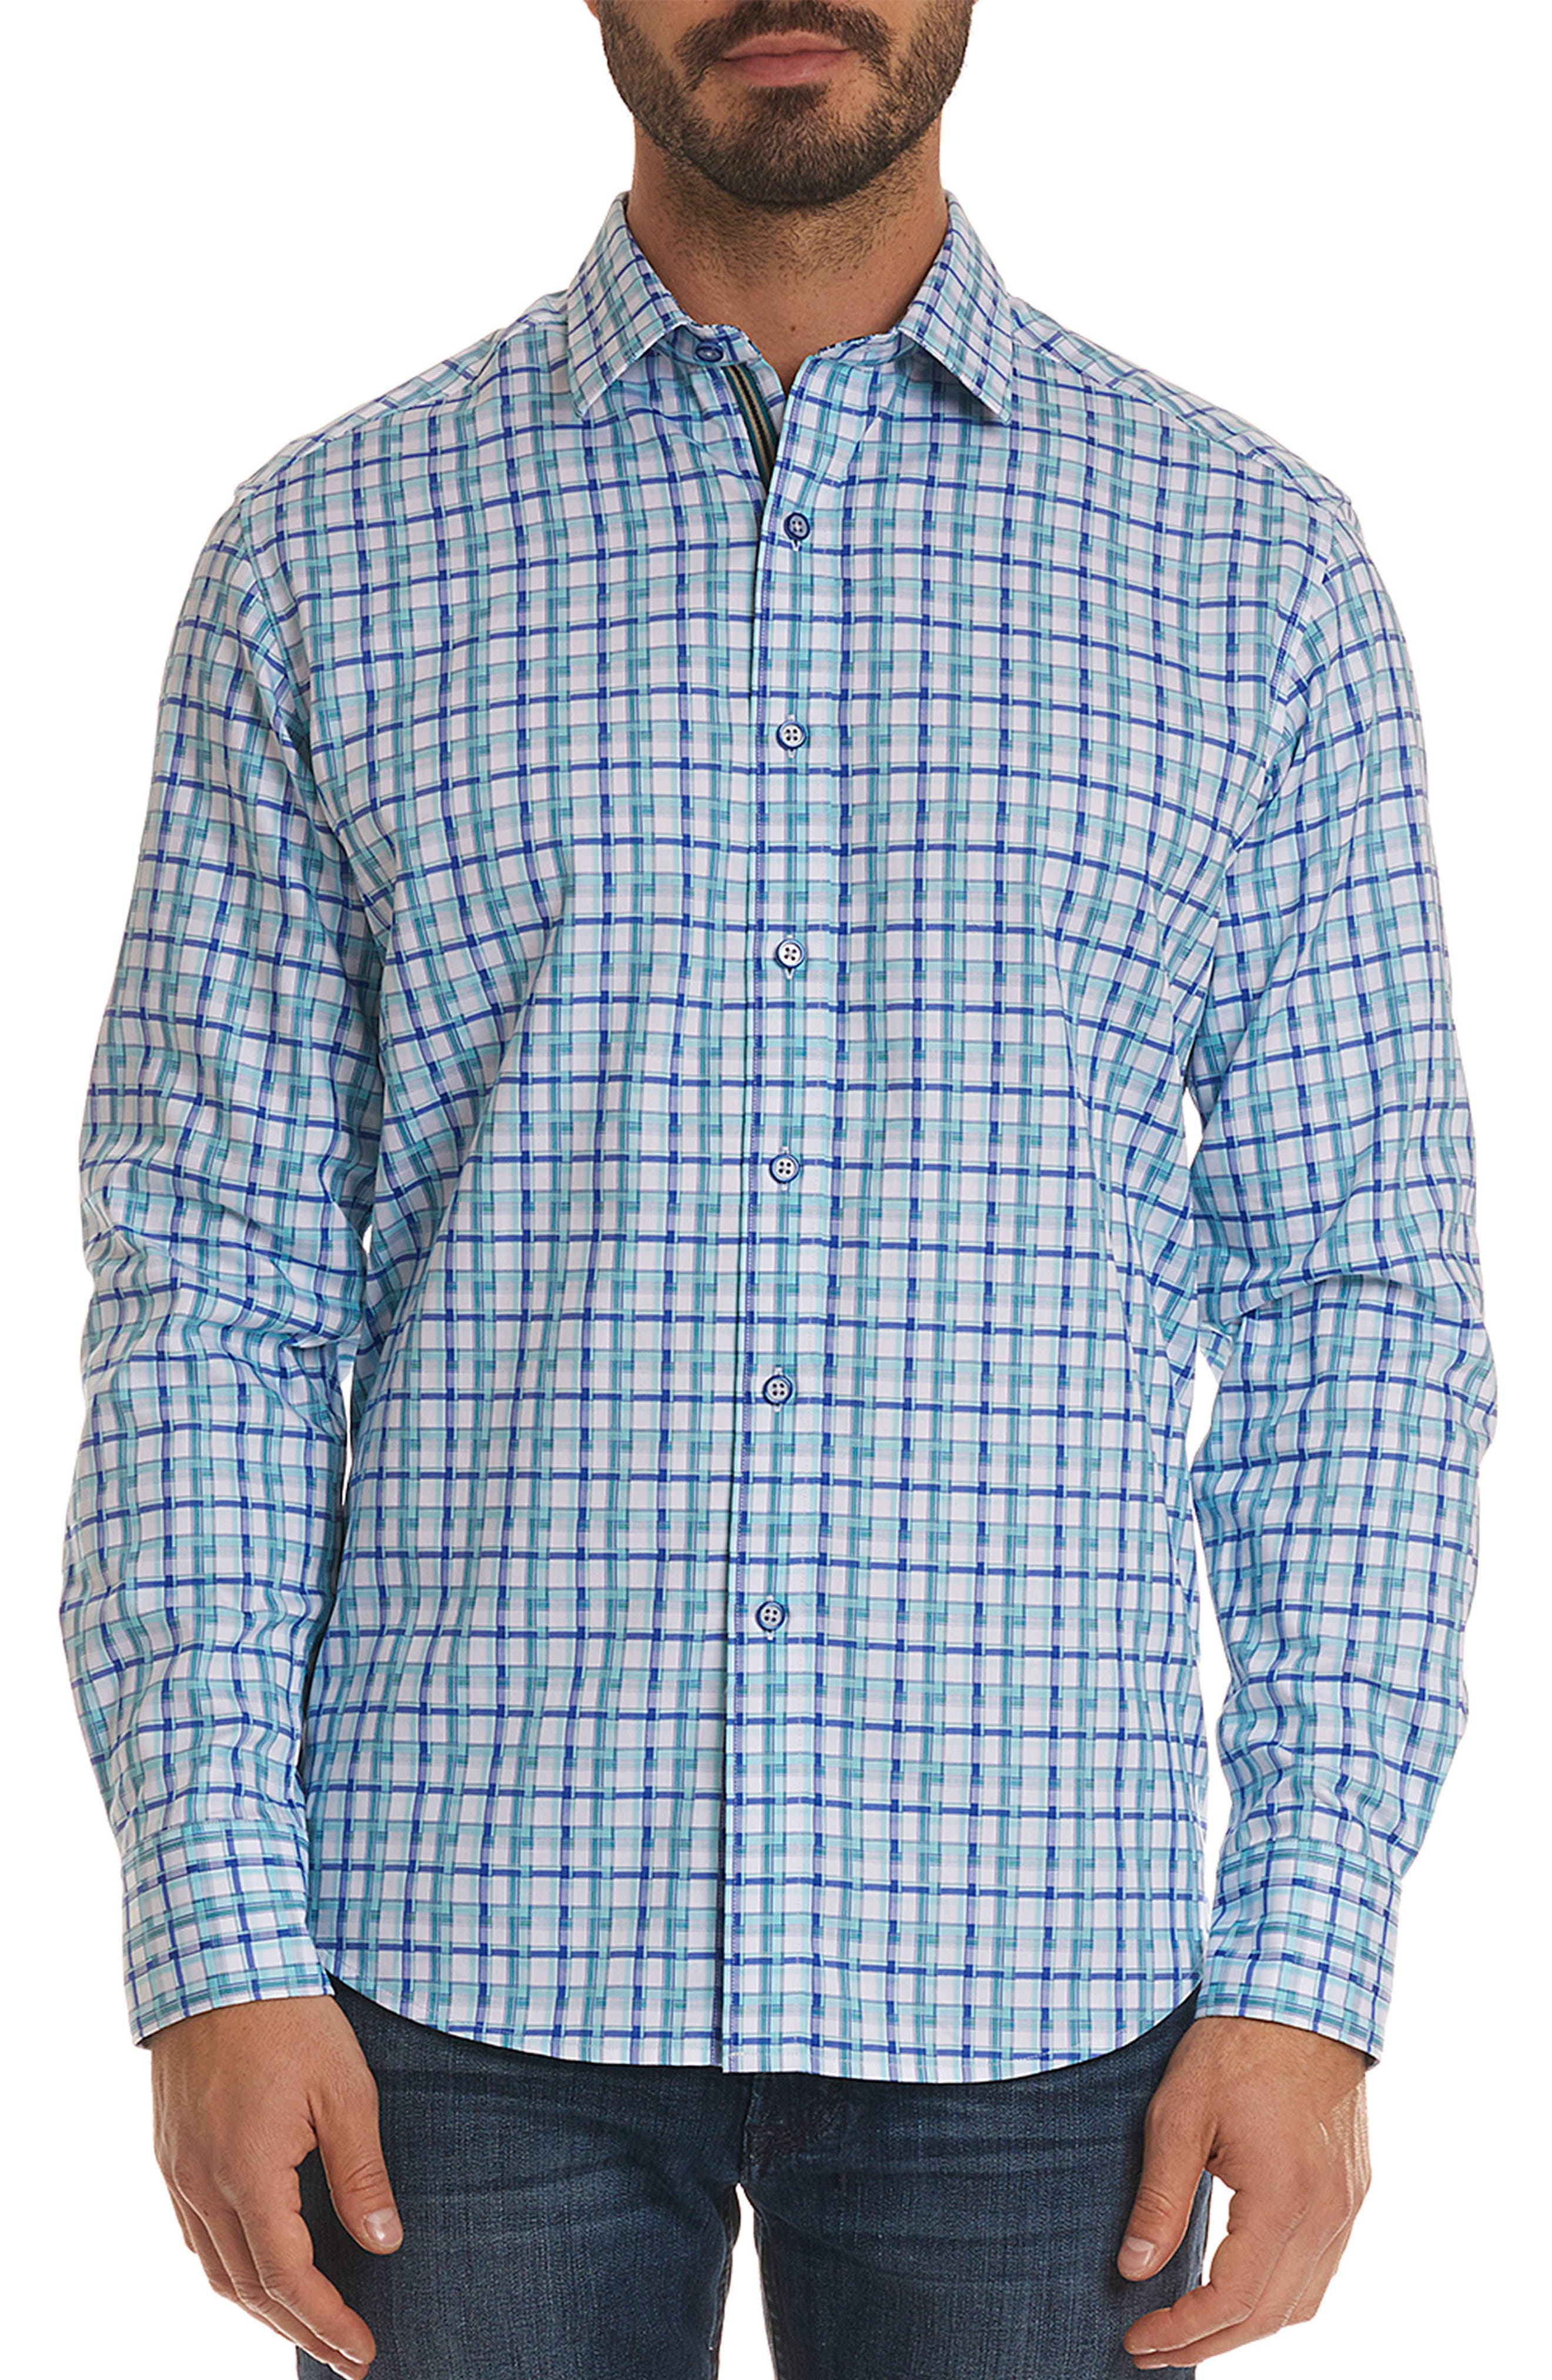 Grouper Classic Fit Geo Sport Shirt,                         Main,                         color, Teal